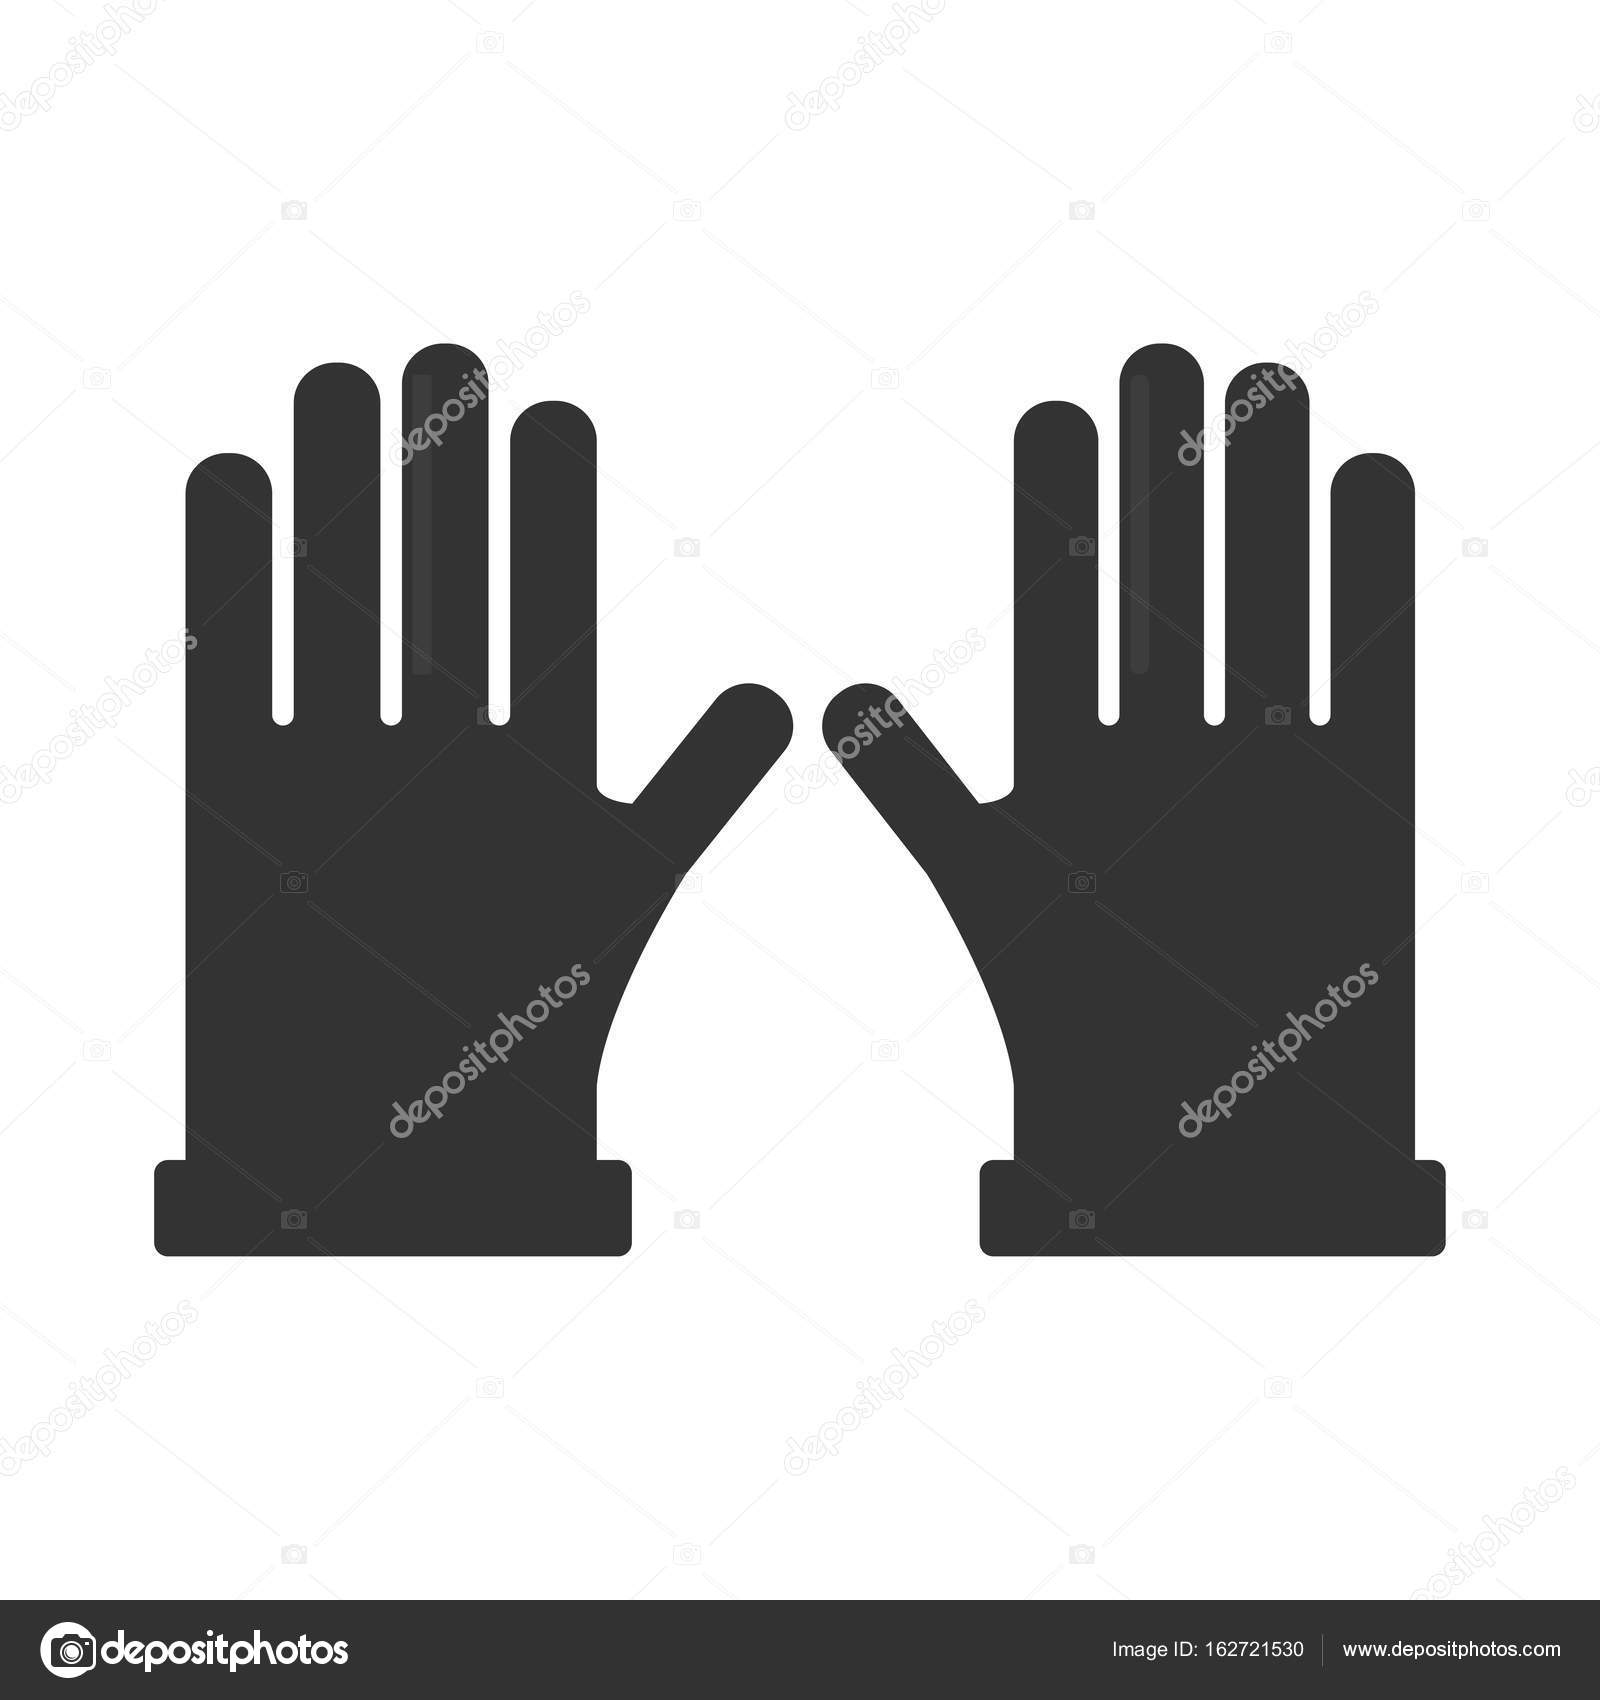 pair of black gloves silhouettes stock vector sonulkaster 162721530